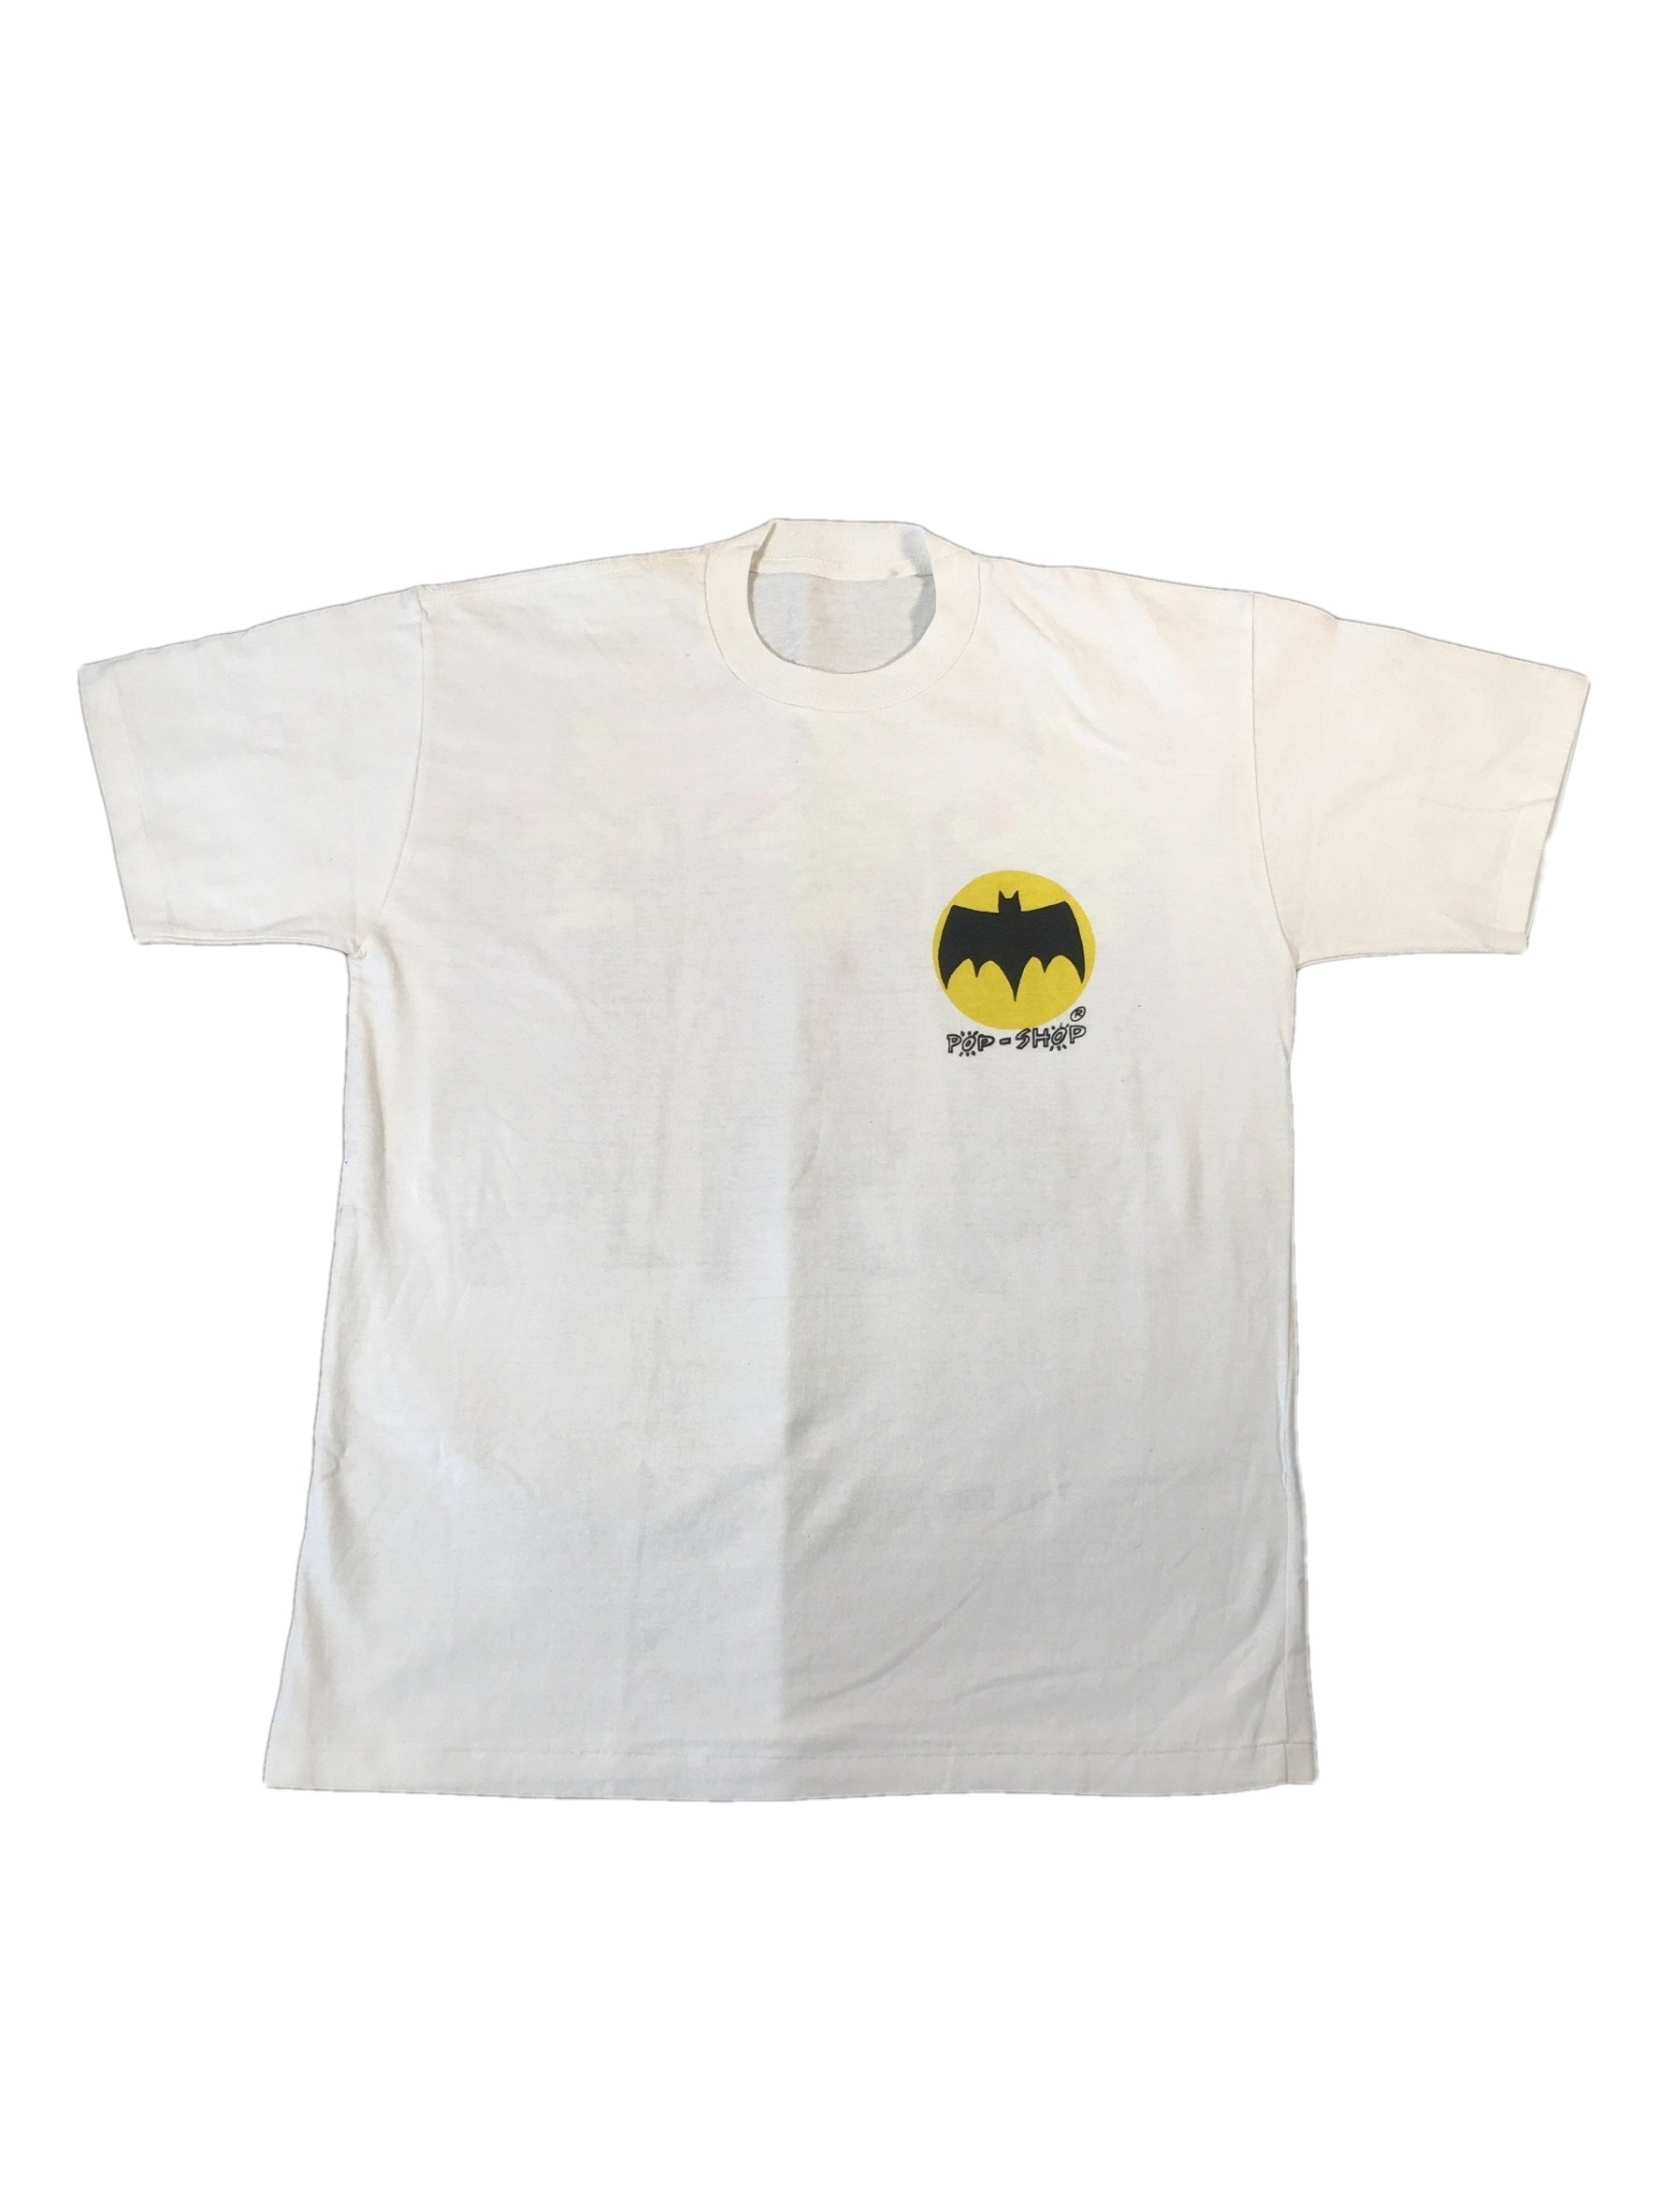 "Vintage Keith Haring Pop Shop ""Batman"" T-Shirt"